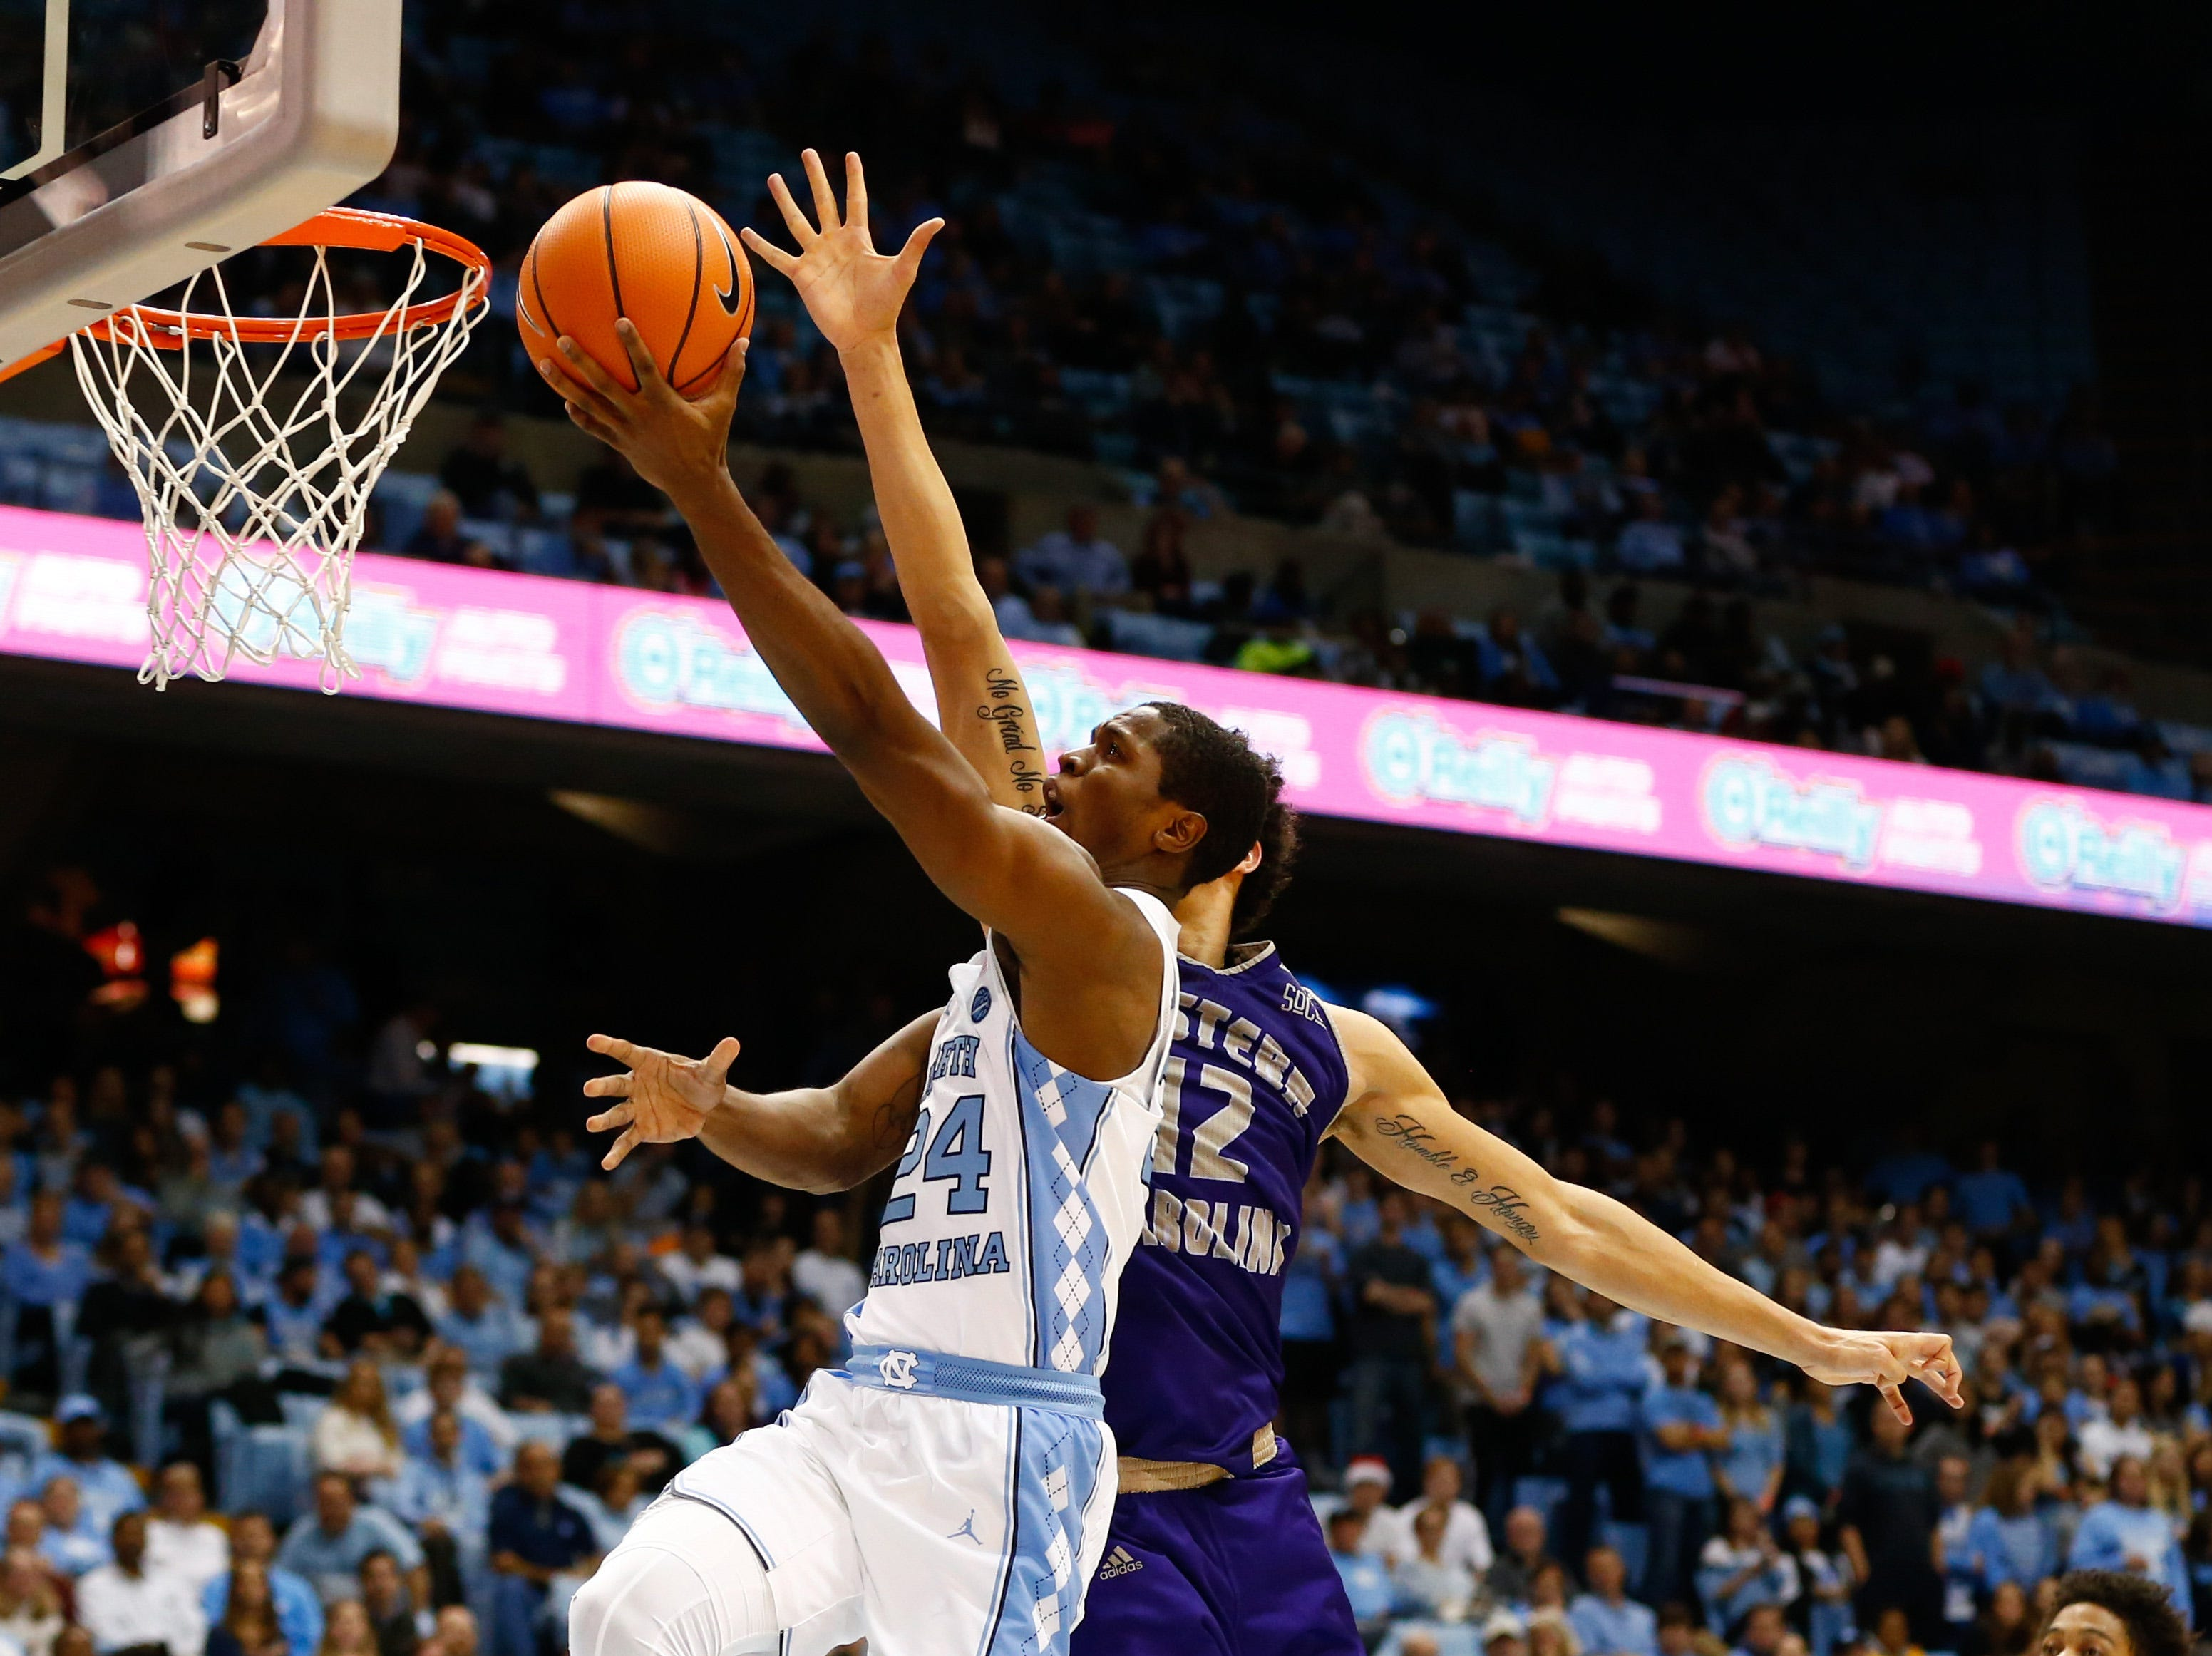 Dec 6, 2017; Chapel Hill, NC, USA; North Carolina Tar Heels guard Kenny Williams (24) goes up for a shot against Western Carolina Catamounts forward Marc Gosselin (12) in the second half at Dean E. Smith Center. Mandatory Credit: Jeremy Brevard-USA TODAY Sports